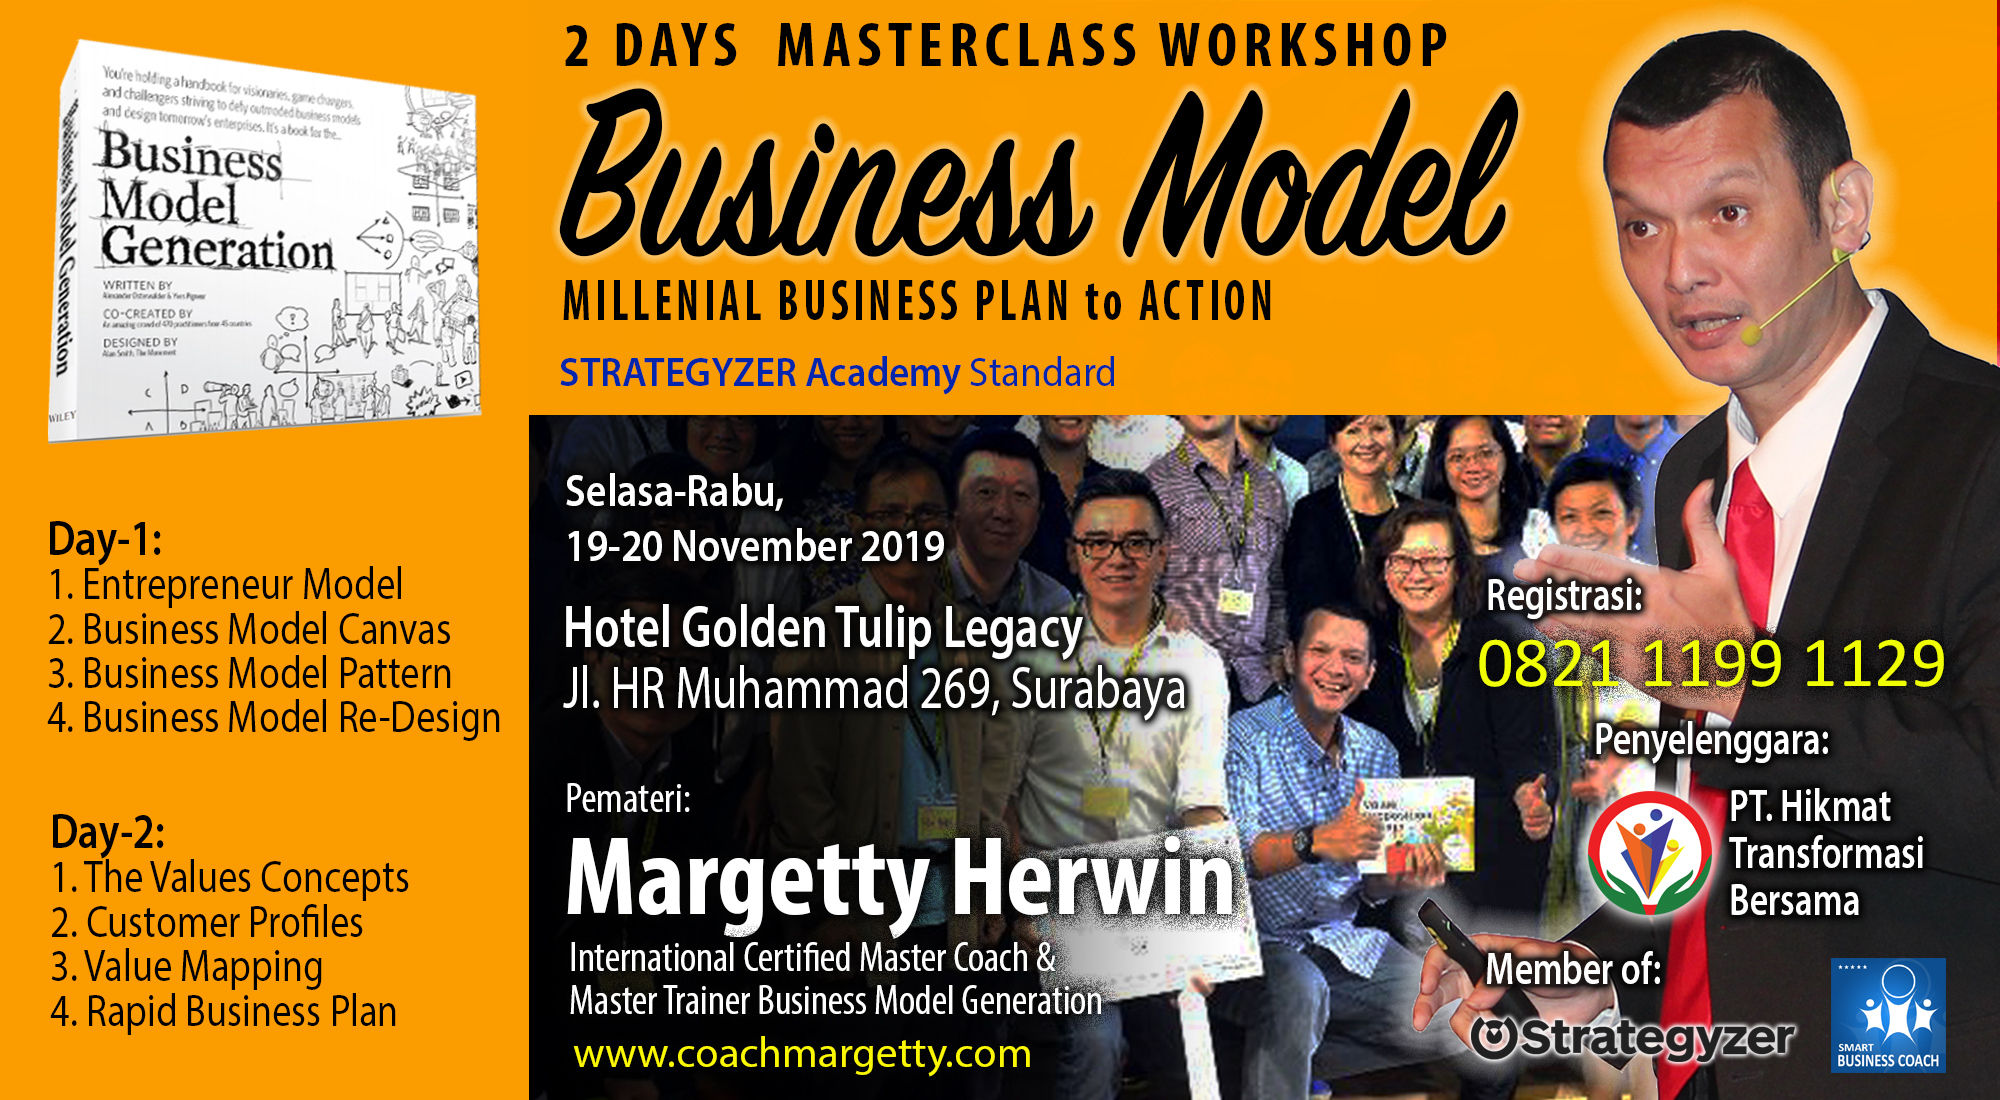 2 Days Masterclass Certification Business Model & Value Proposition Design